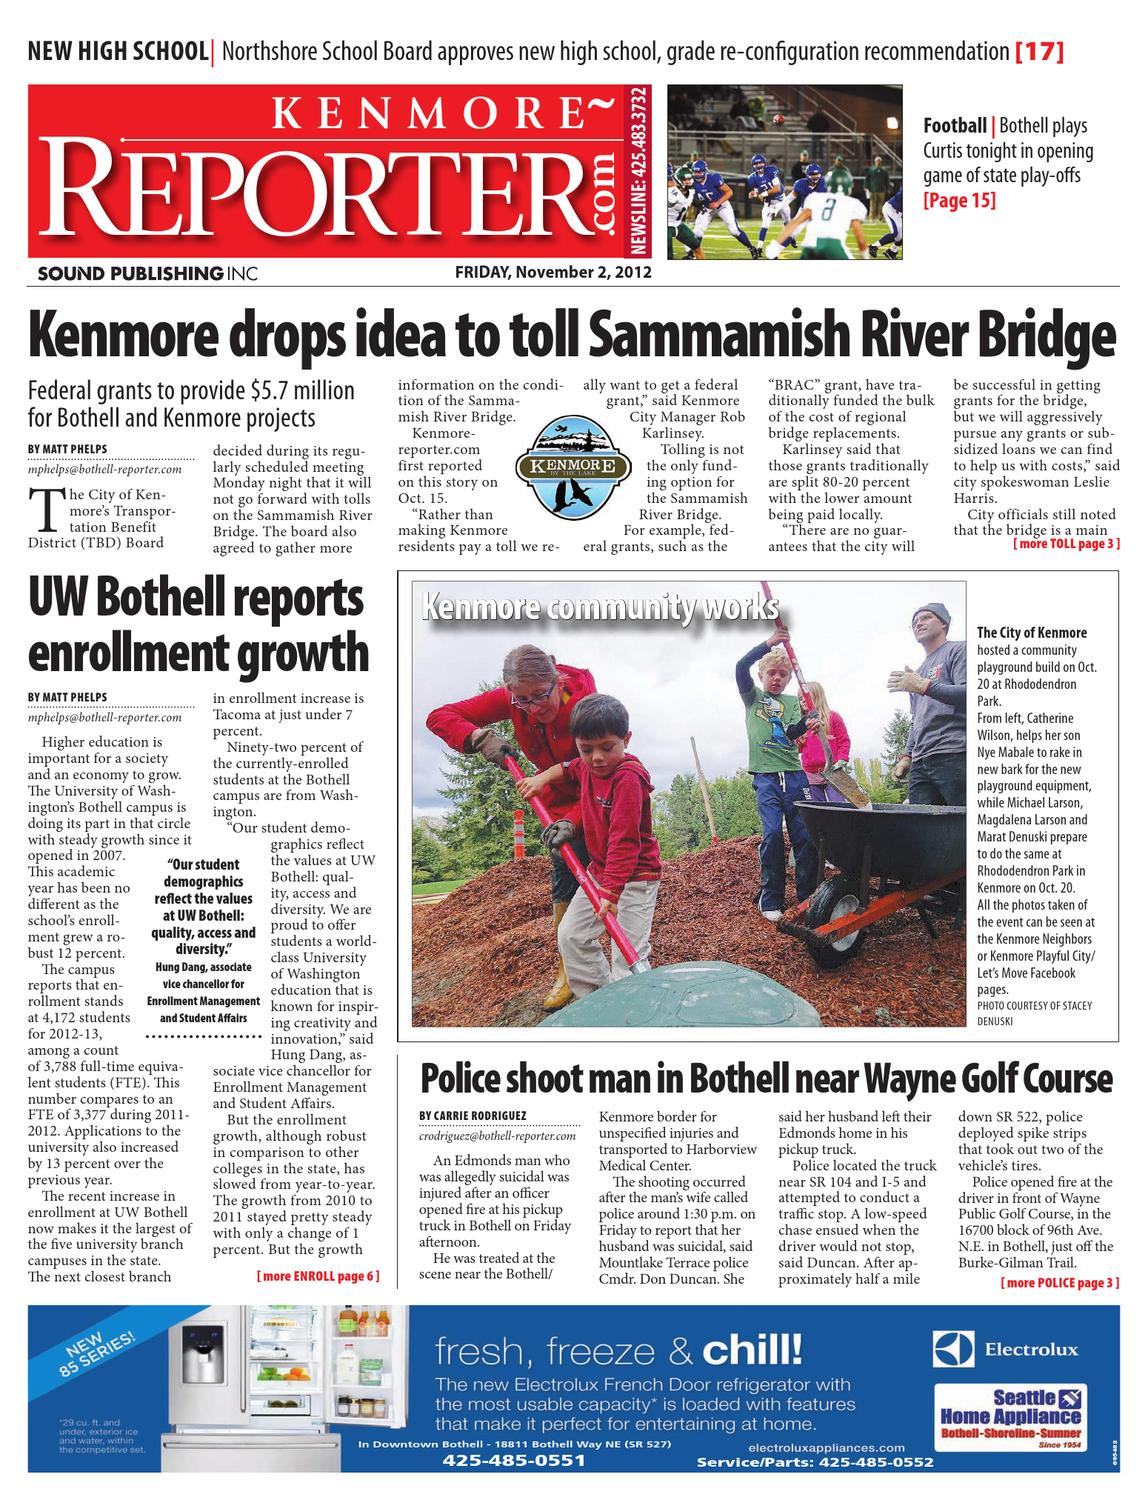 Bothell/Kenmore Reporter, November 02, 2012 by Sound